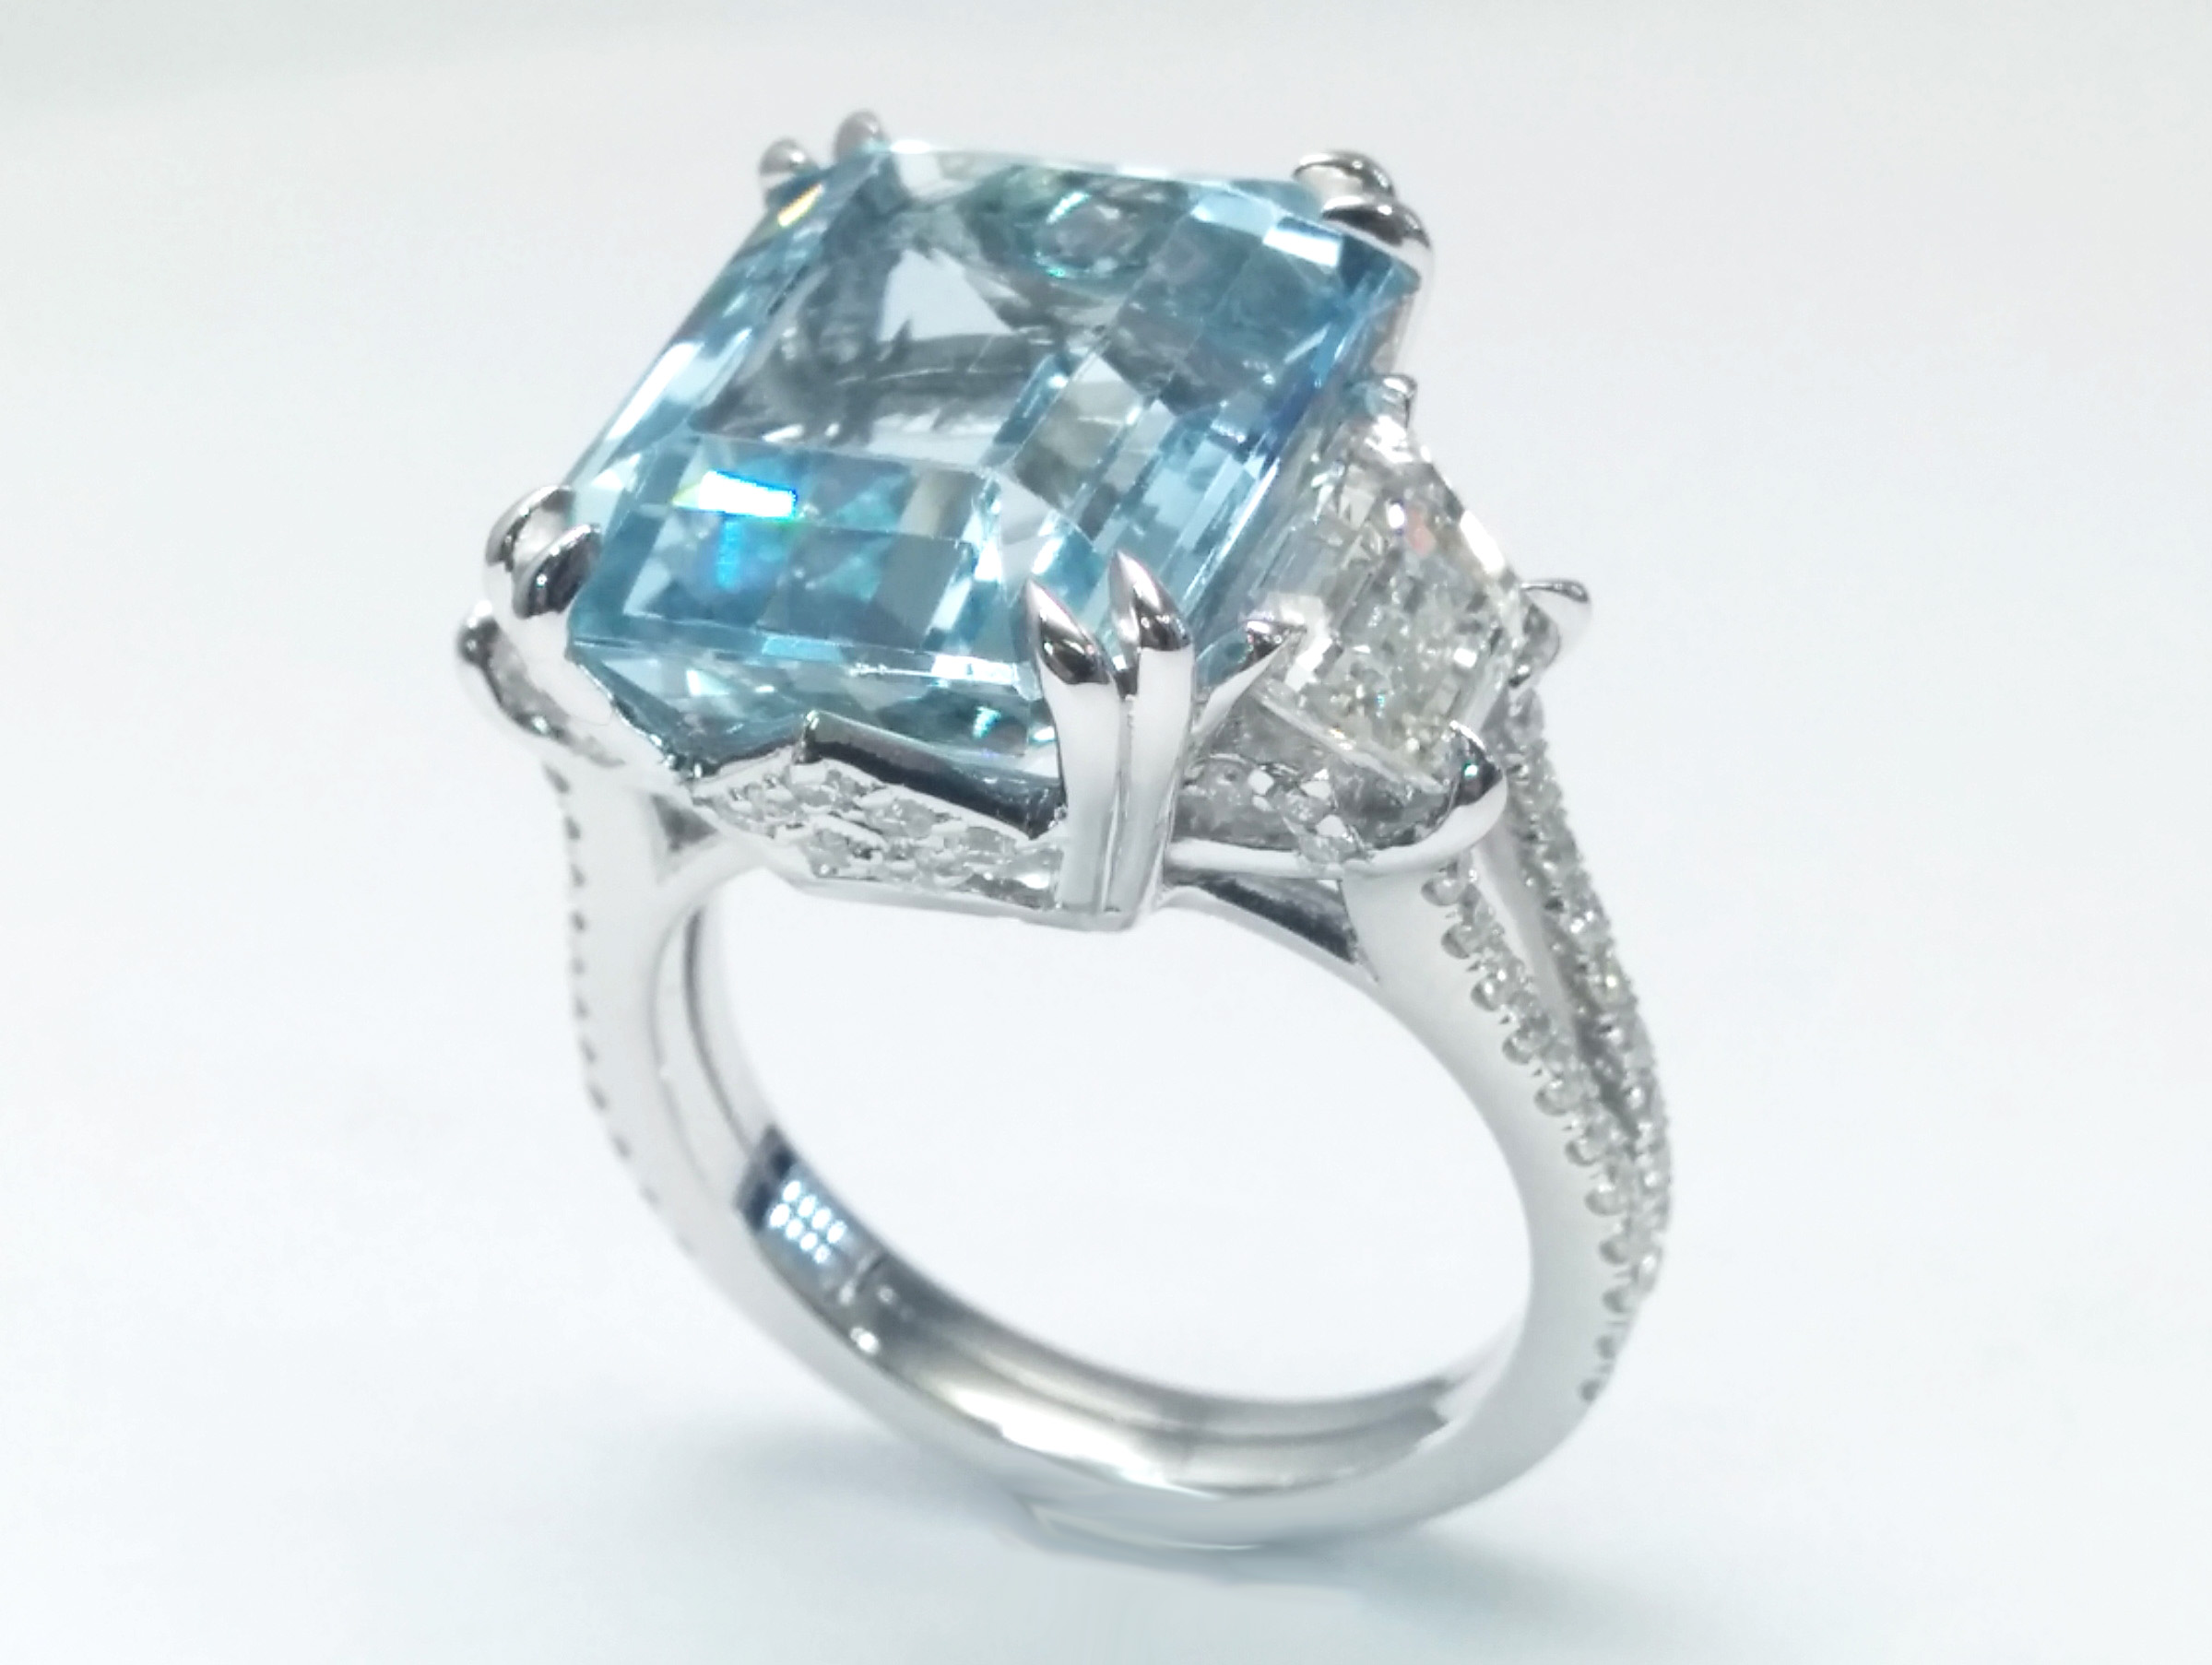 aquamarine rings ring jan logan robertson aqua marine and fine diamond wedding jewellery